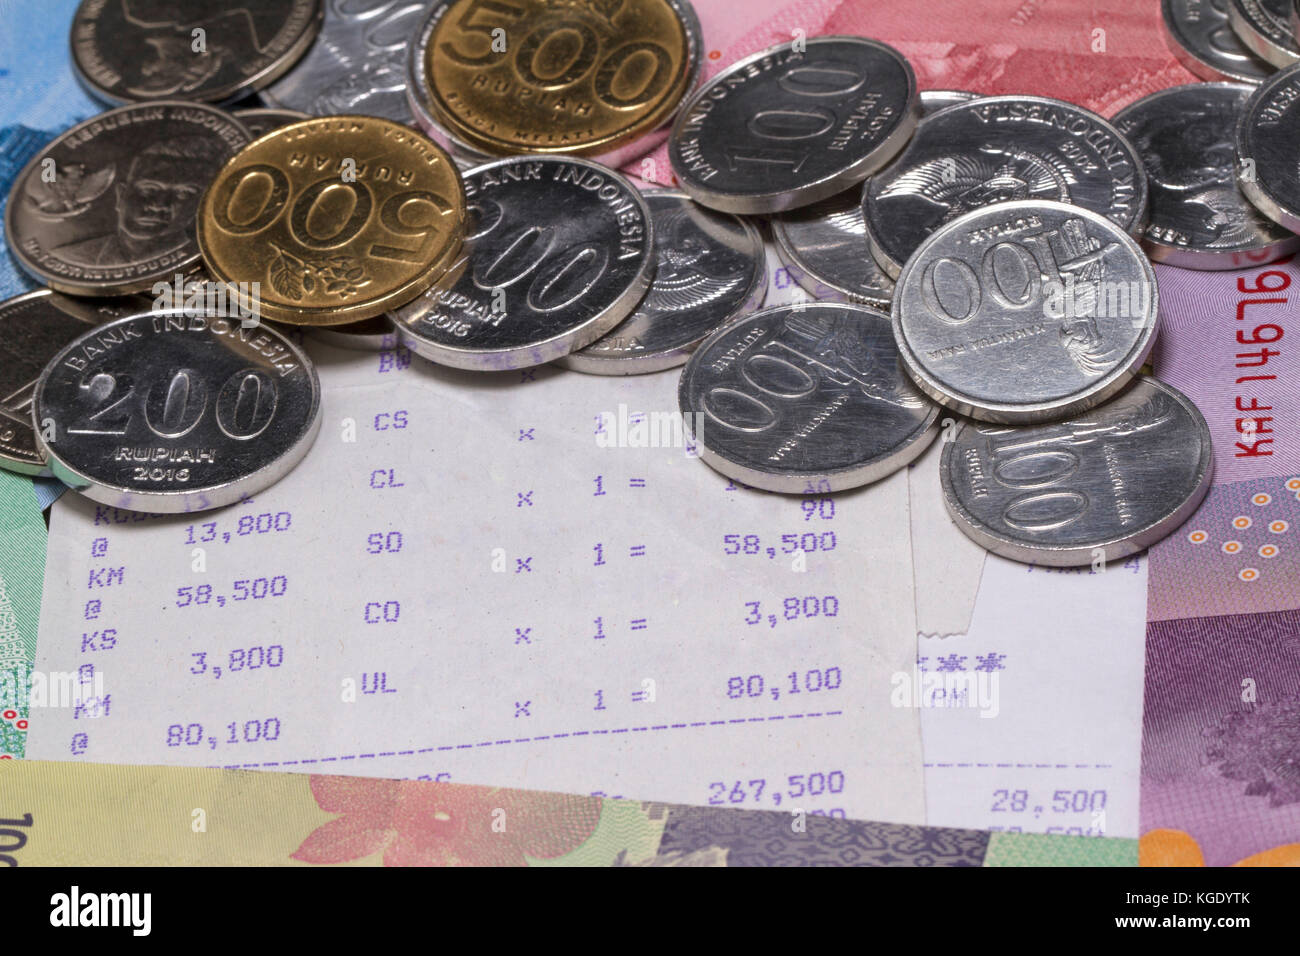 Spending Money and Payment Illustrated with coins, bank notes and receipt paper - Stock Image